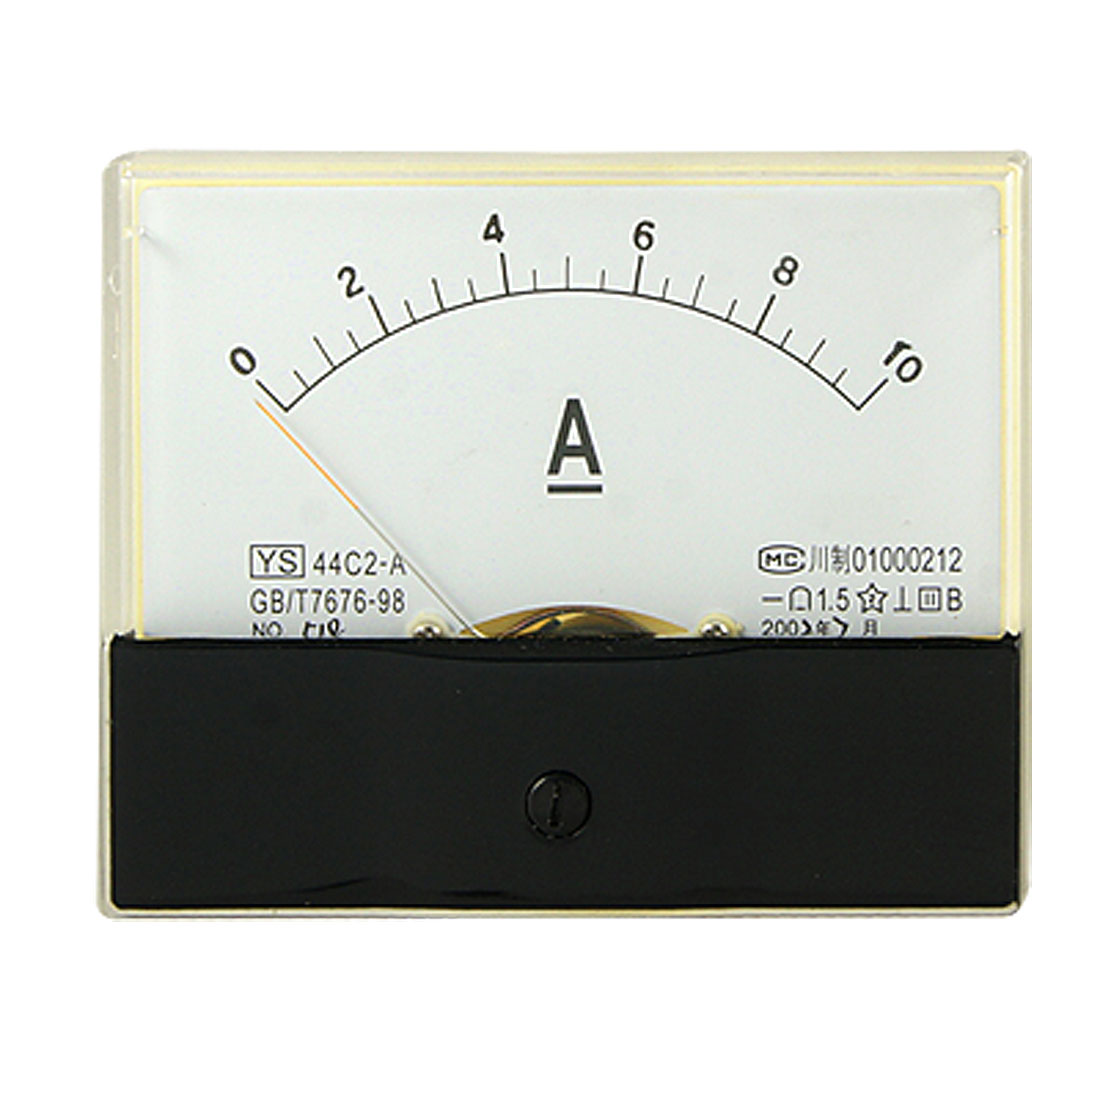 Analog DC 0-10A Current Ampere Meter Rectangle Panel Ammeter Gauge 44C2